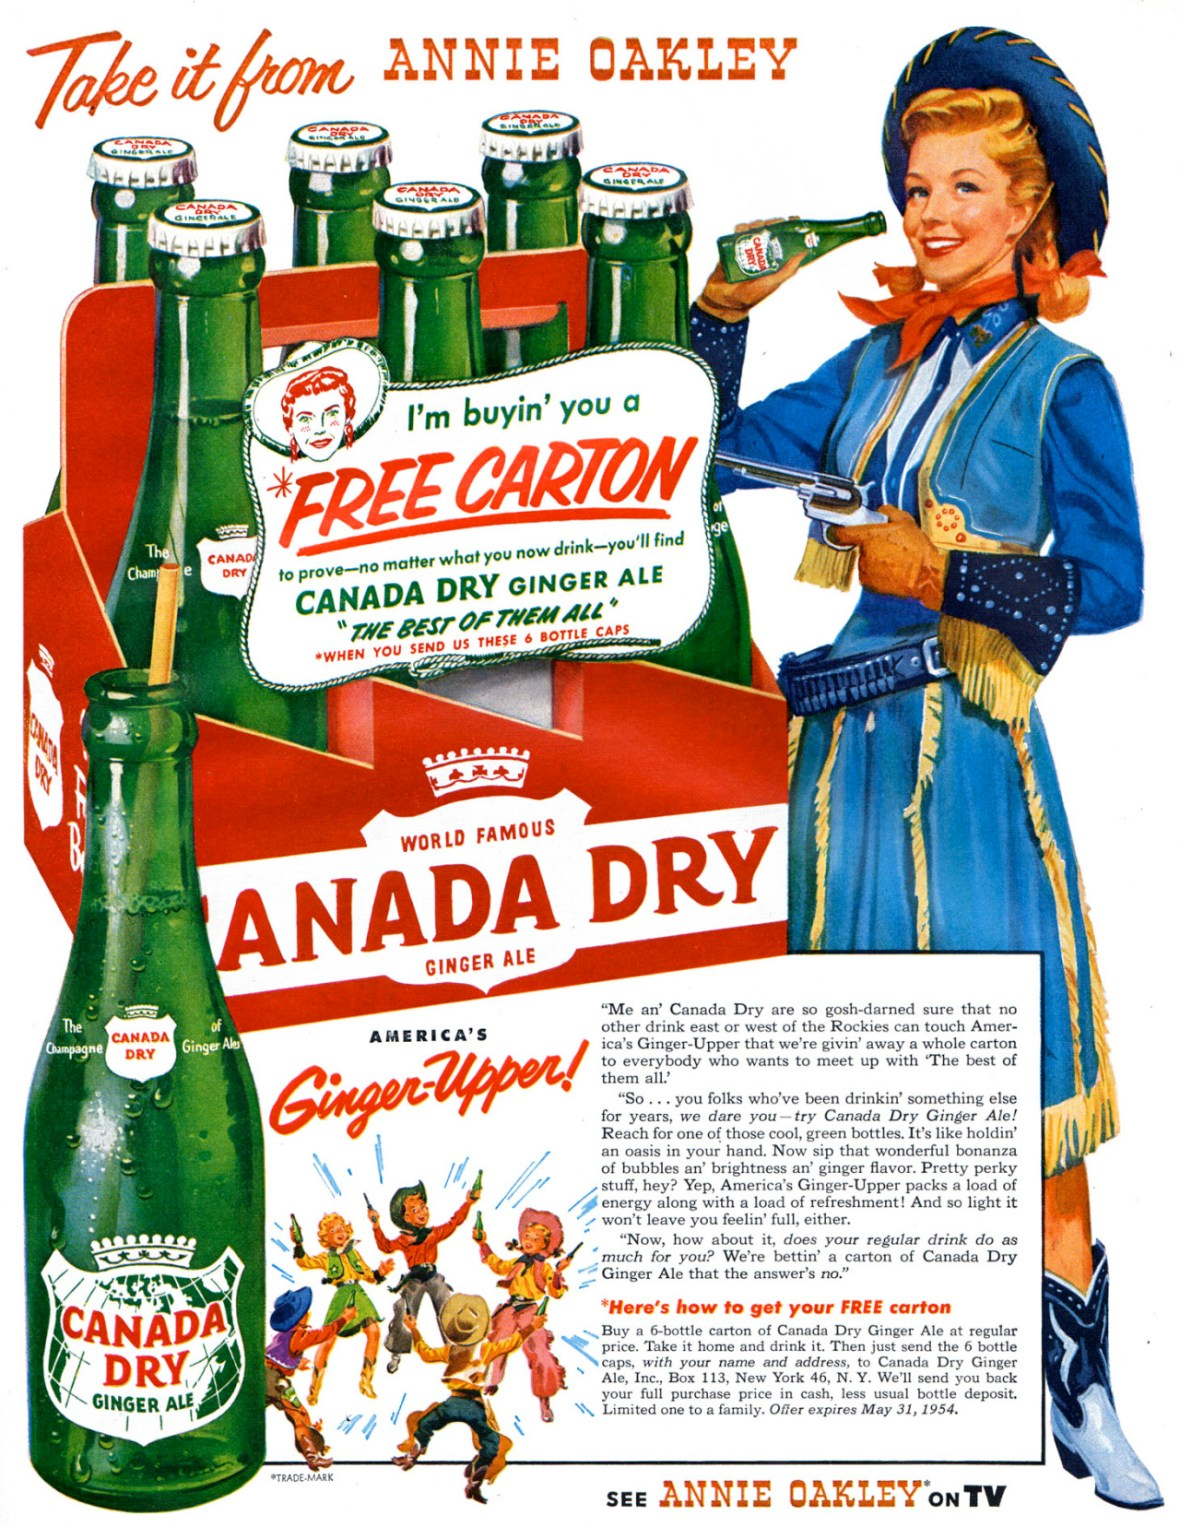 Canada Dry Ginger Ale featuring Gail Davis as Annie Oakley - 1954